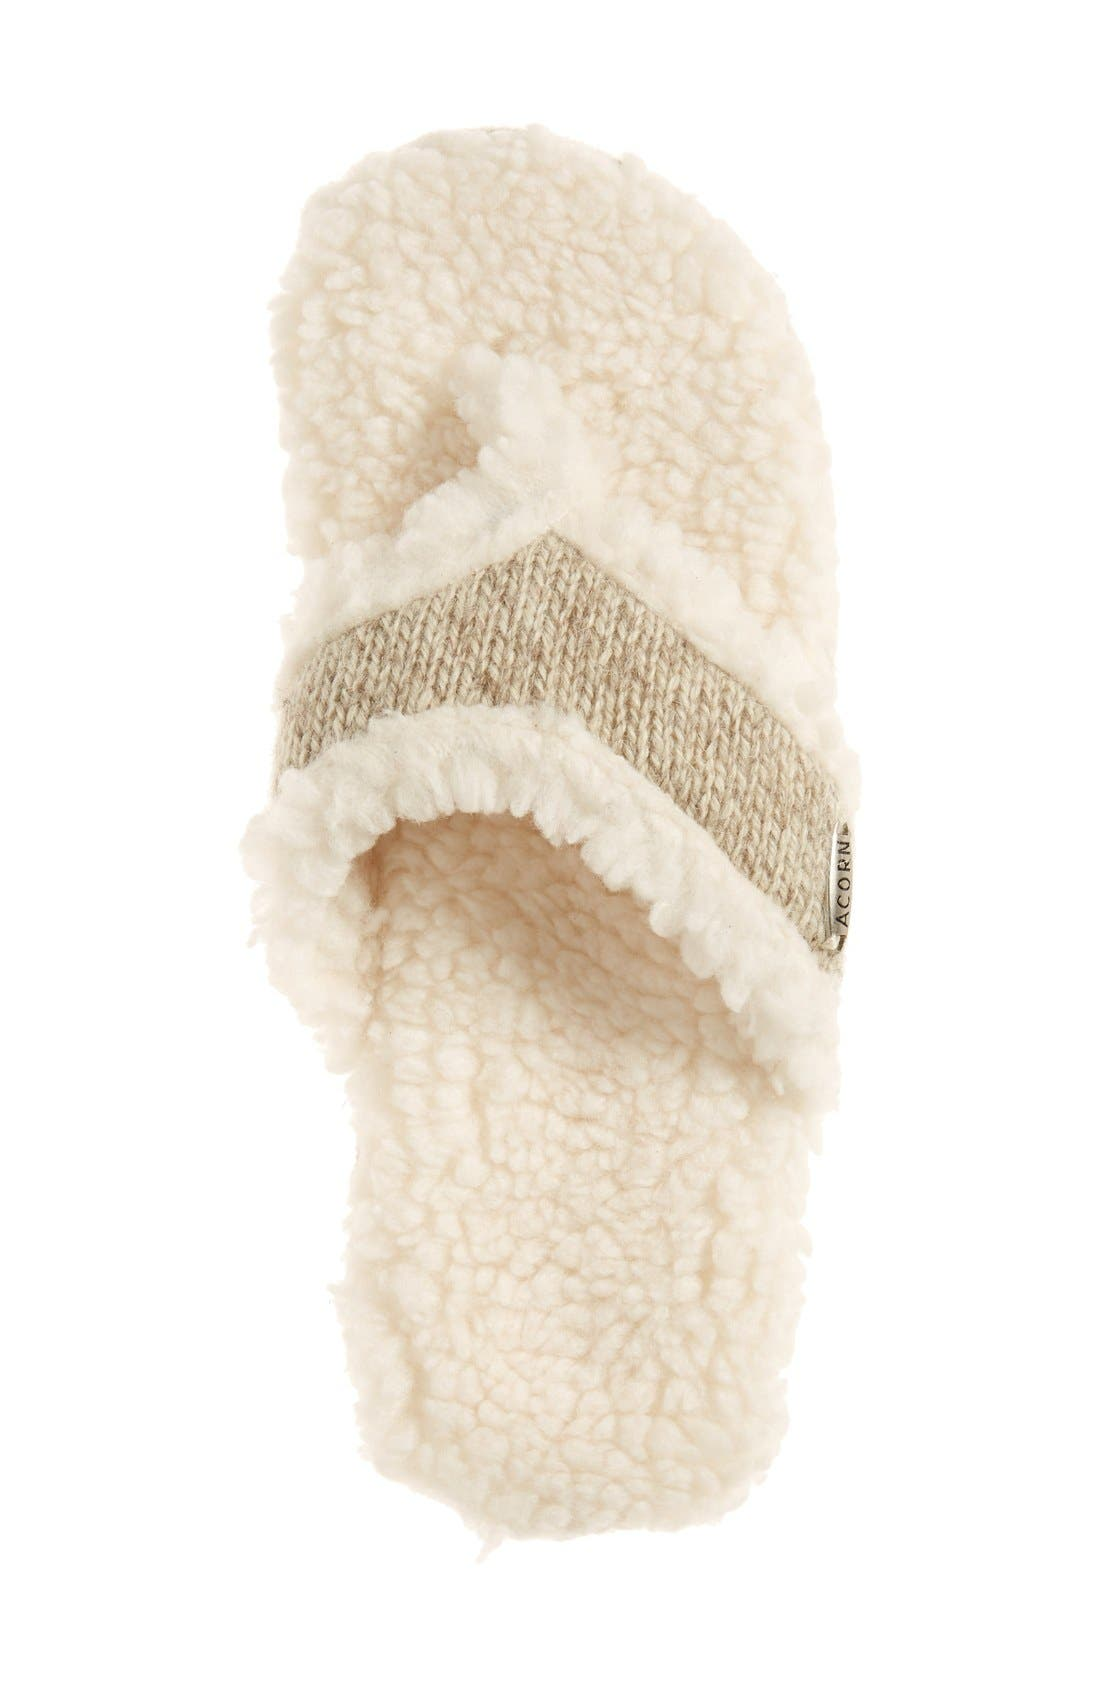 'Ragg' Spa Slipper,                             Alternate thumbnail 3, color,                             GREY FABRIC